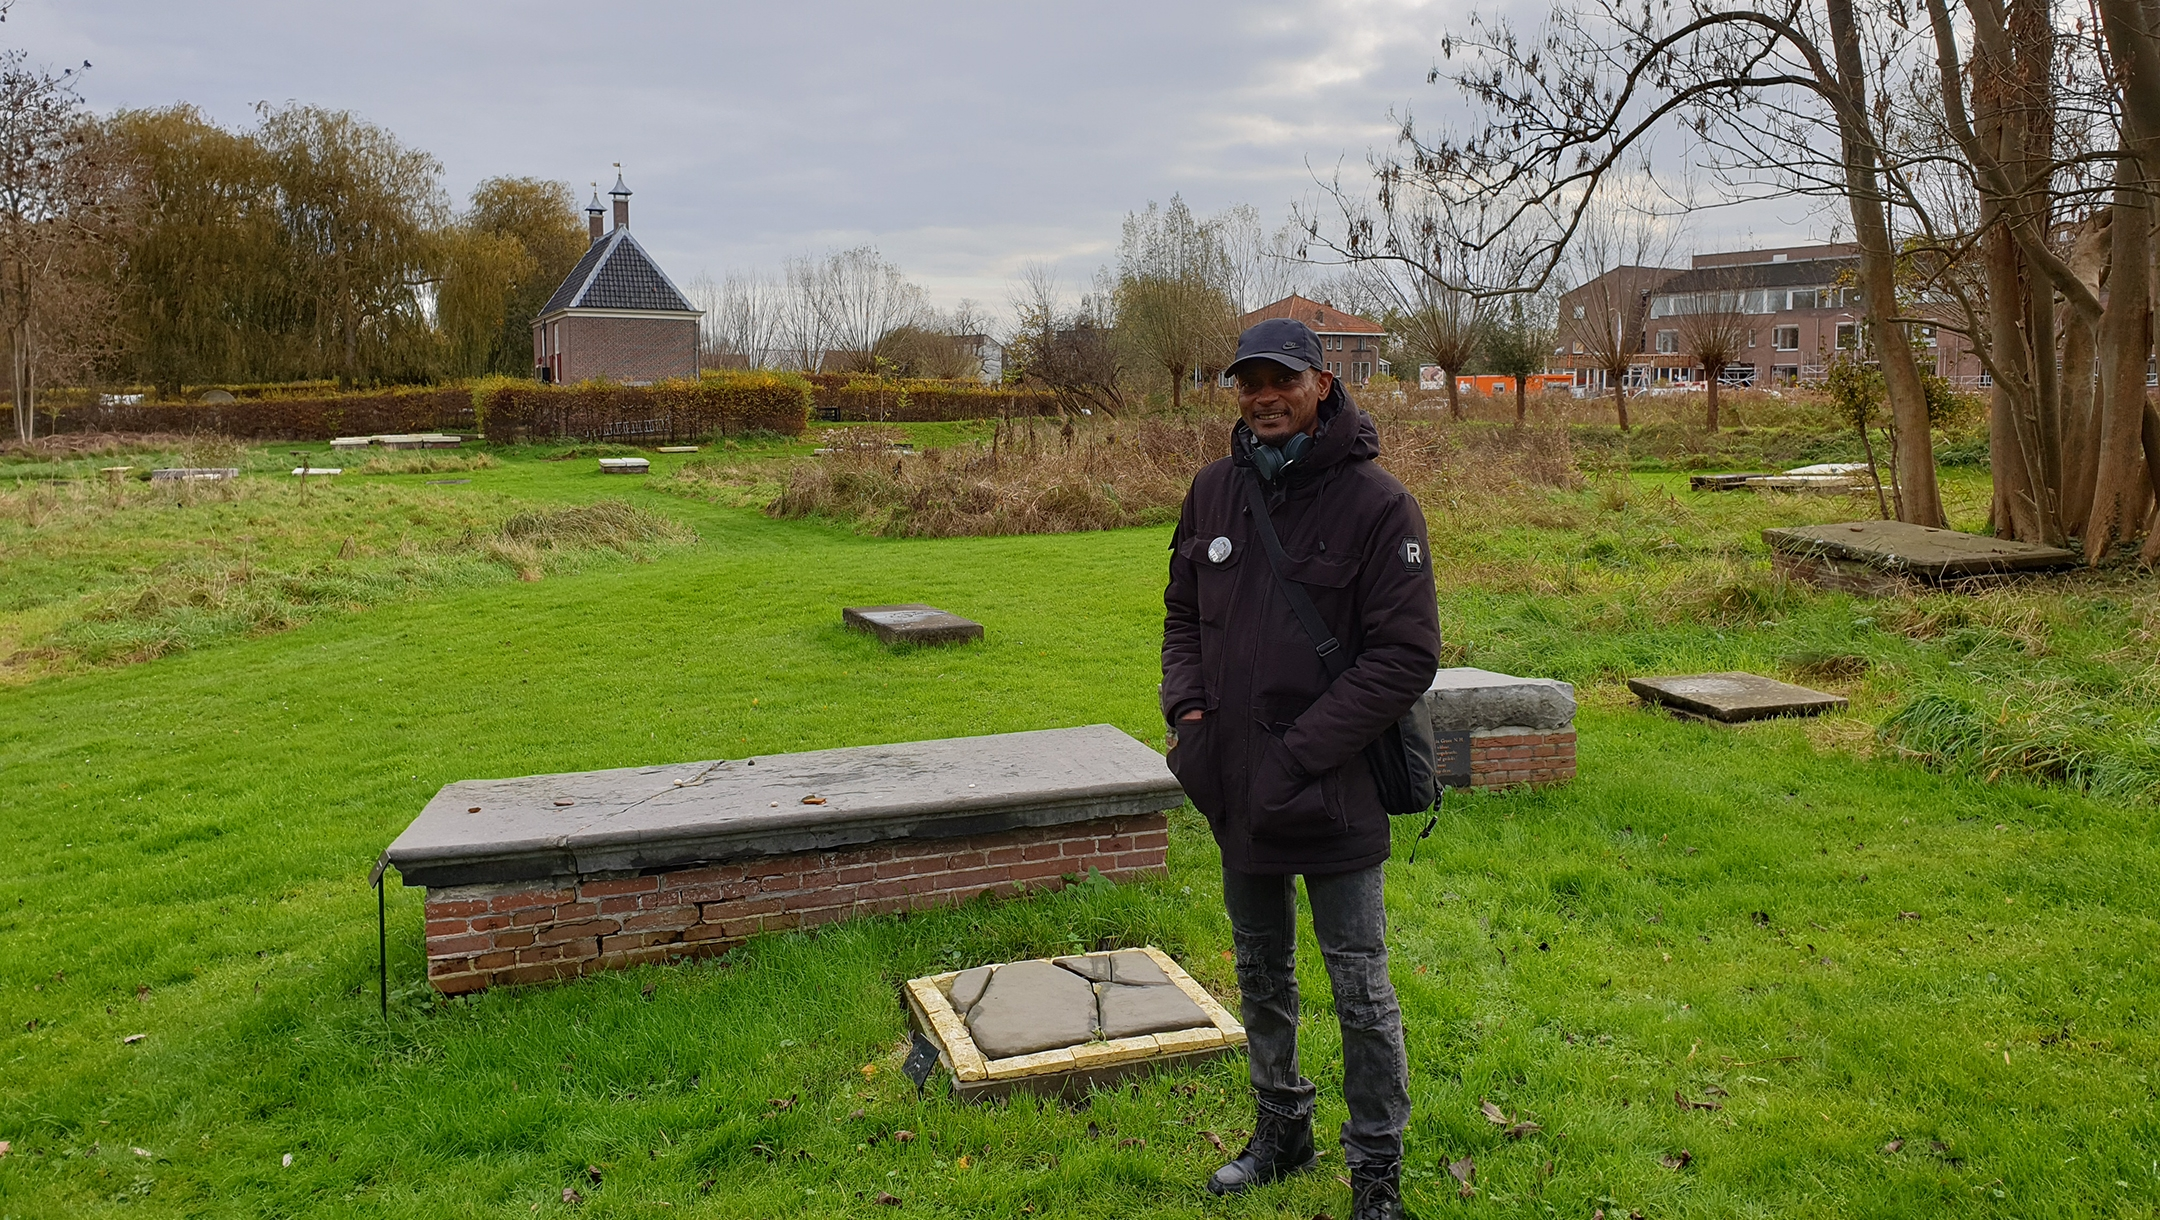 Sergio Berrenstein stands next to the grave of Elieser and his master at the entrance to the Jewish cemetery in Ouderkerk aan de Amstel, the Netherlands on Nov. 20, 2020. (Cnaan Liphshiz)